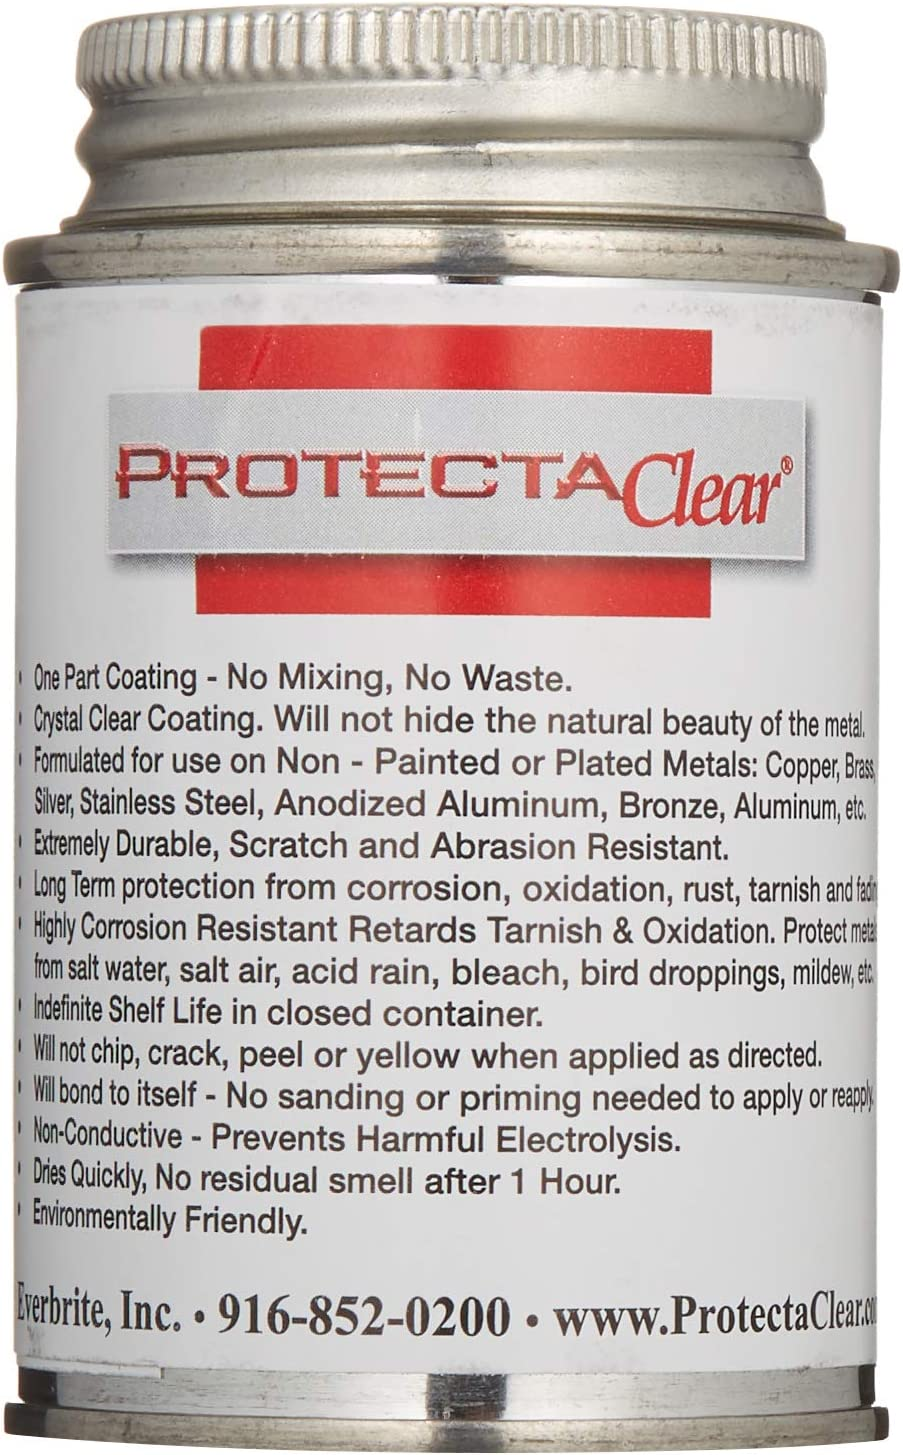 ProtectaClear 4 Oz. Clear, Protective Coating for Metal